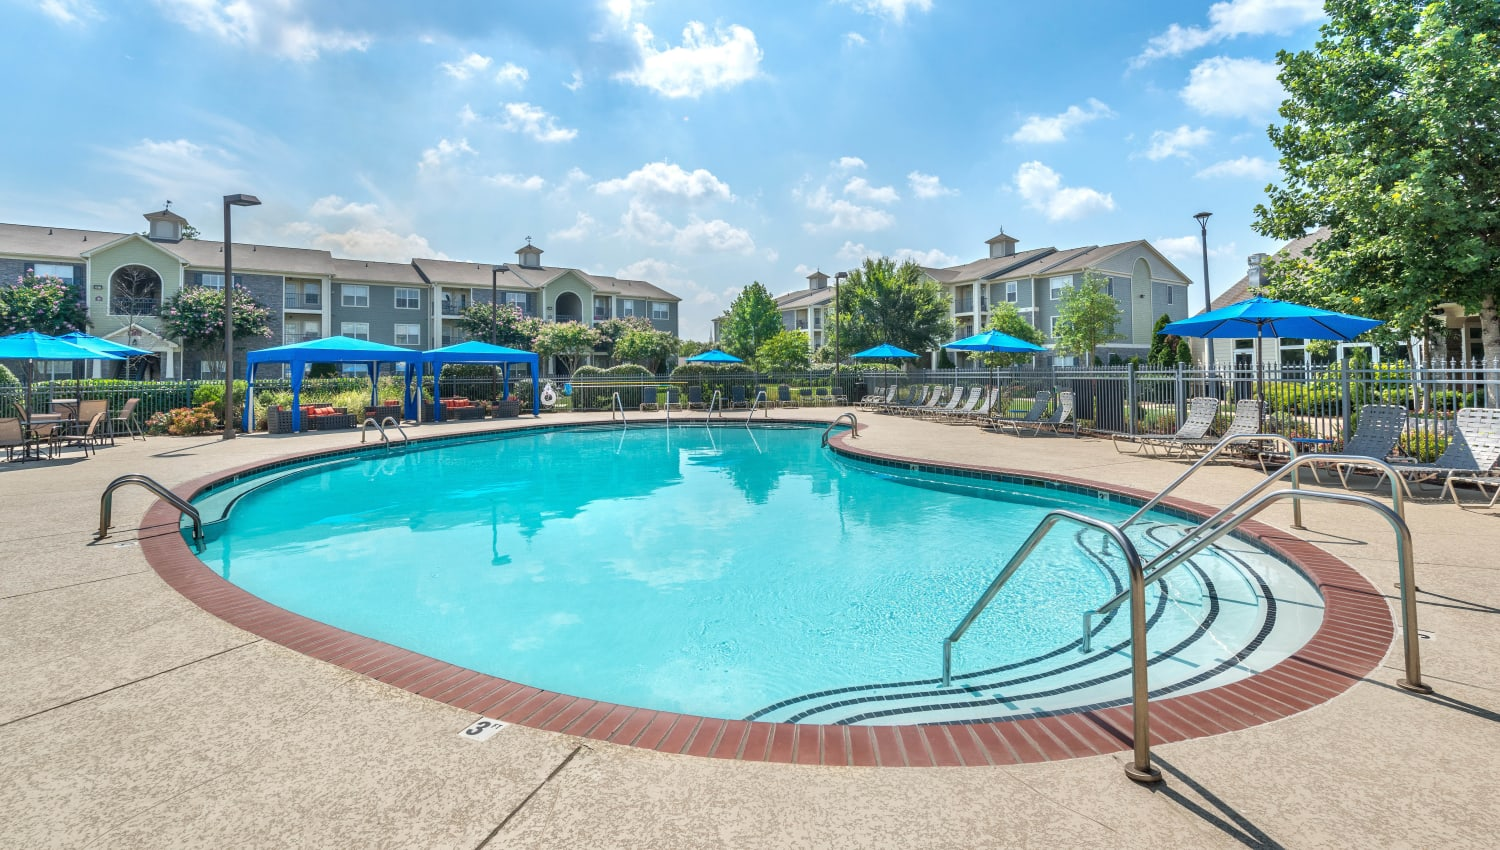 Resort-style swimming pool at Olympus Hillwood in Murfreesboro, Tennessee